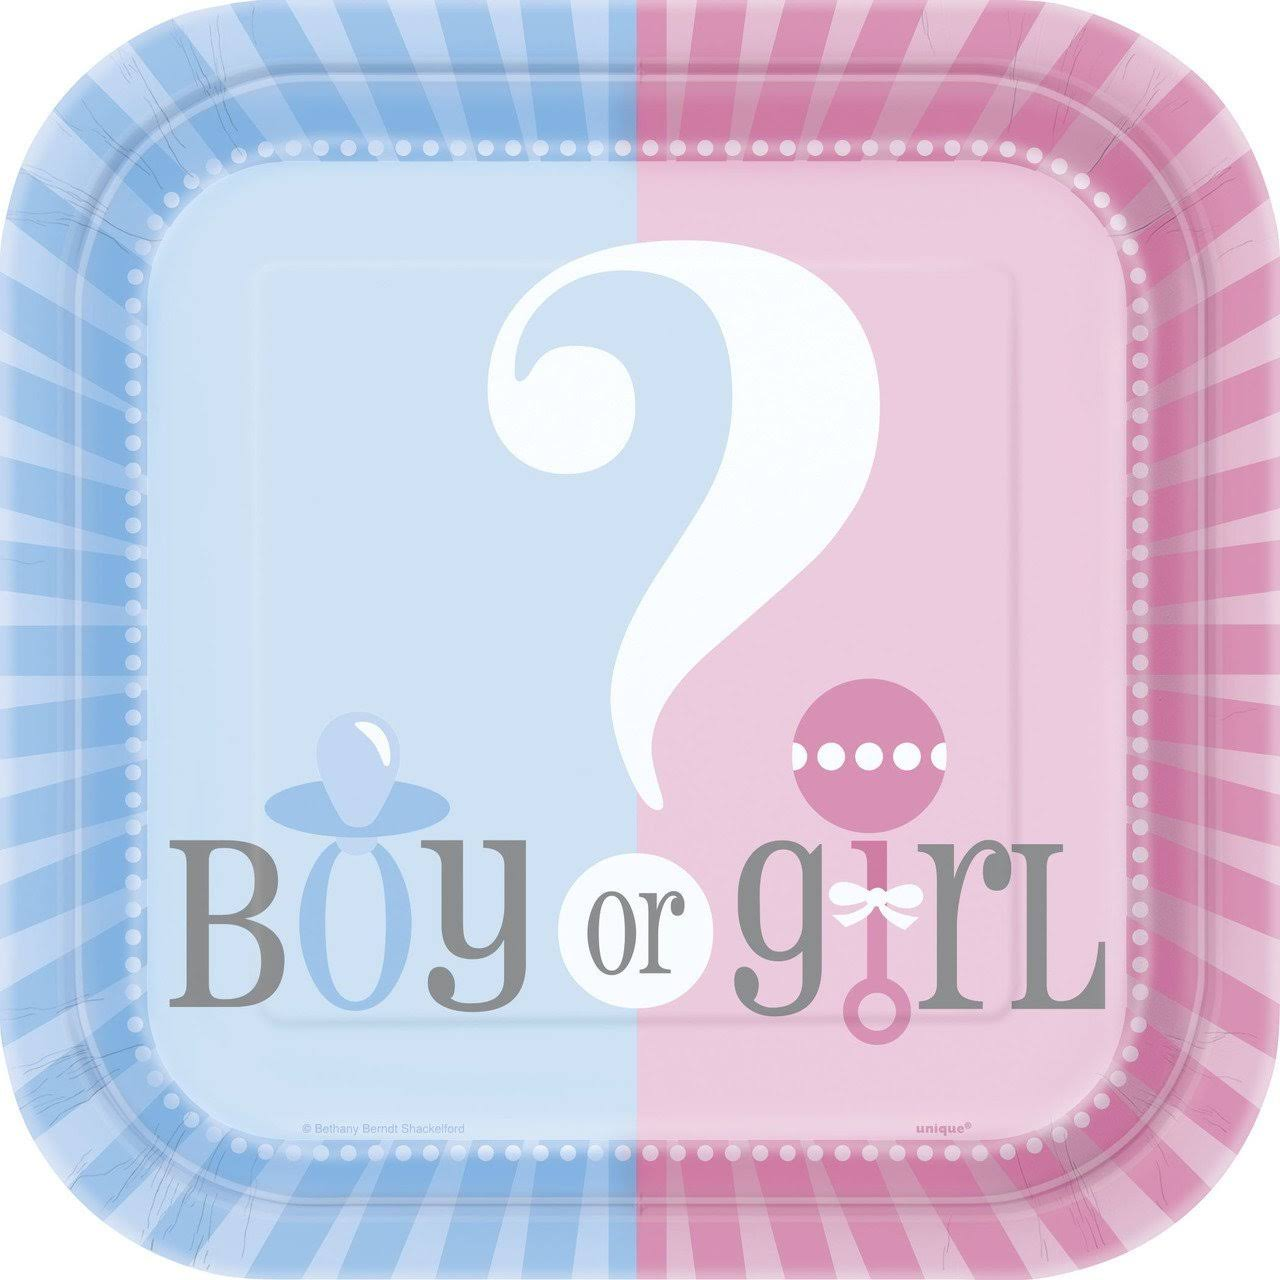 Unique Gender Reveal Girl or Boy Dessert Plates - Pink Blue, 7', 10ct